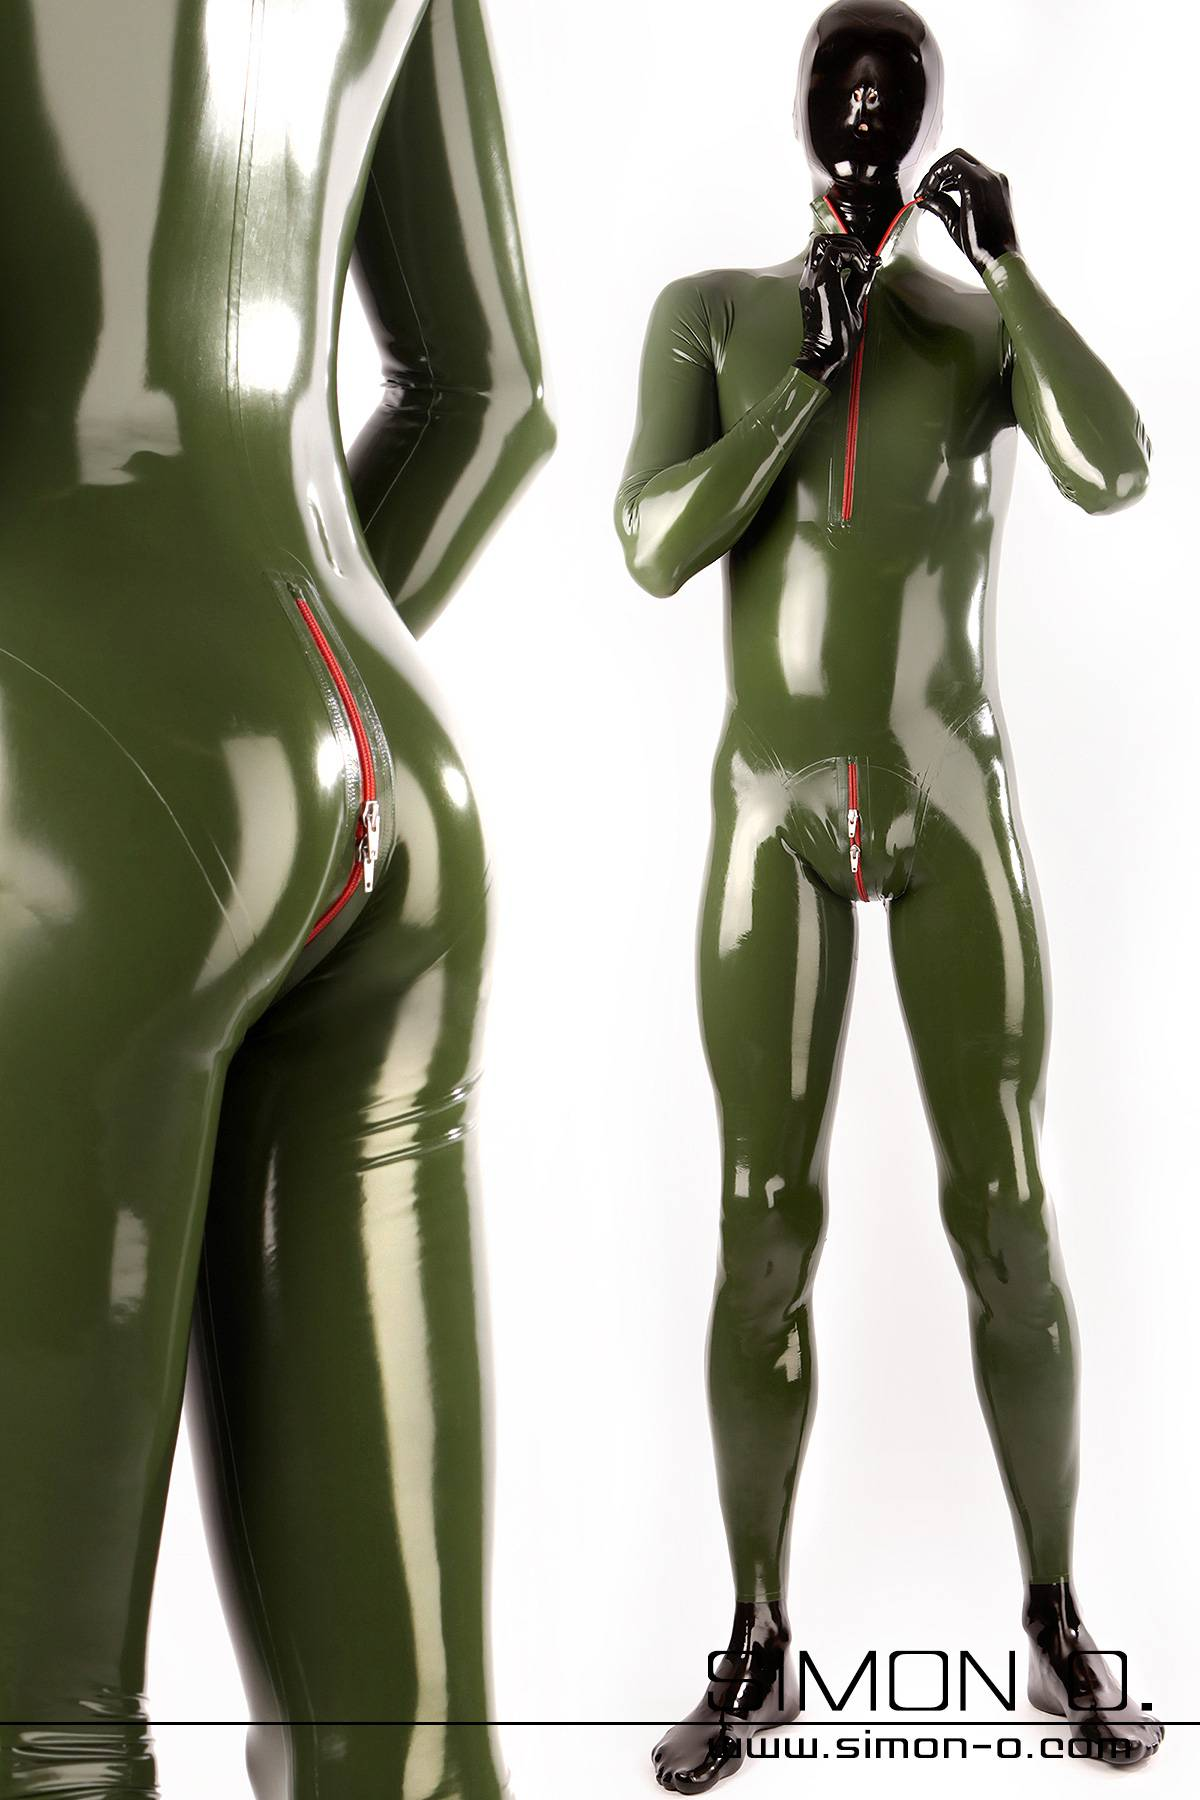 A man with a black latex mask and gloves wears a skintight latex suit in olive green.